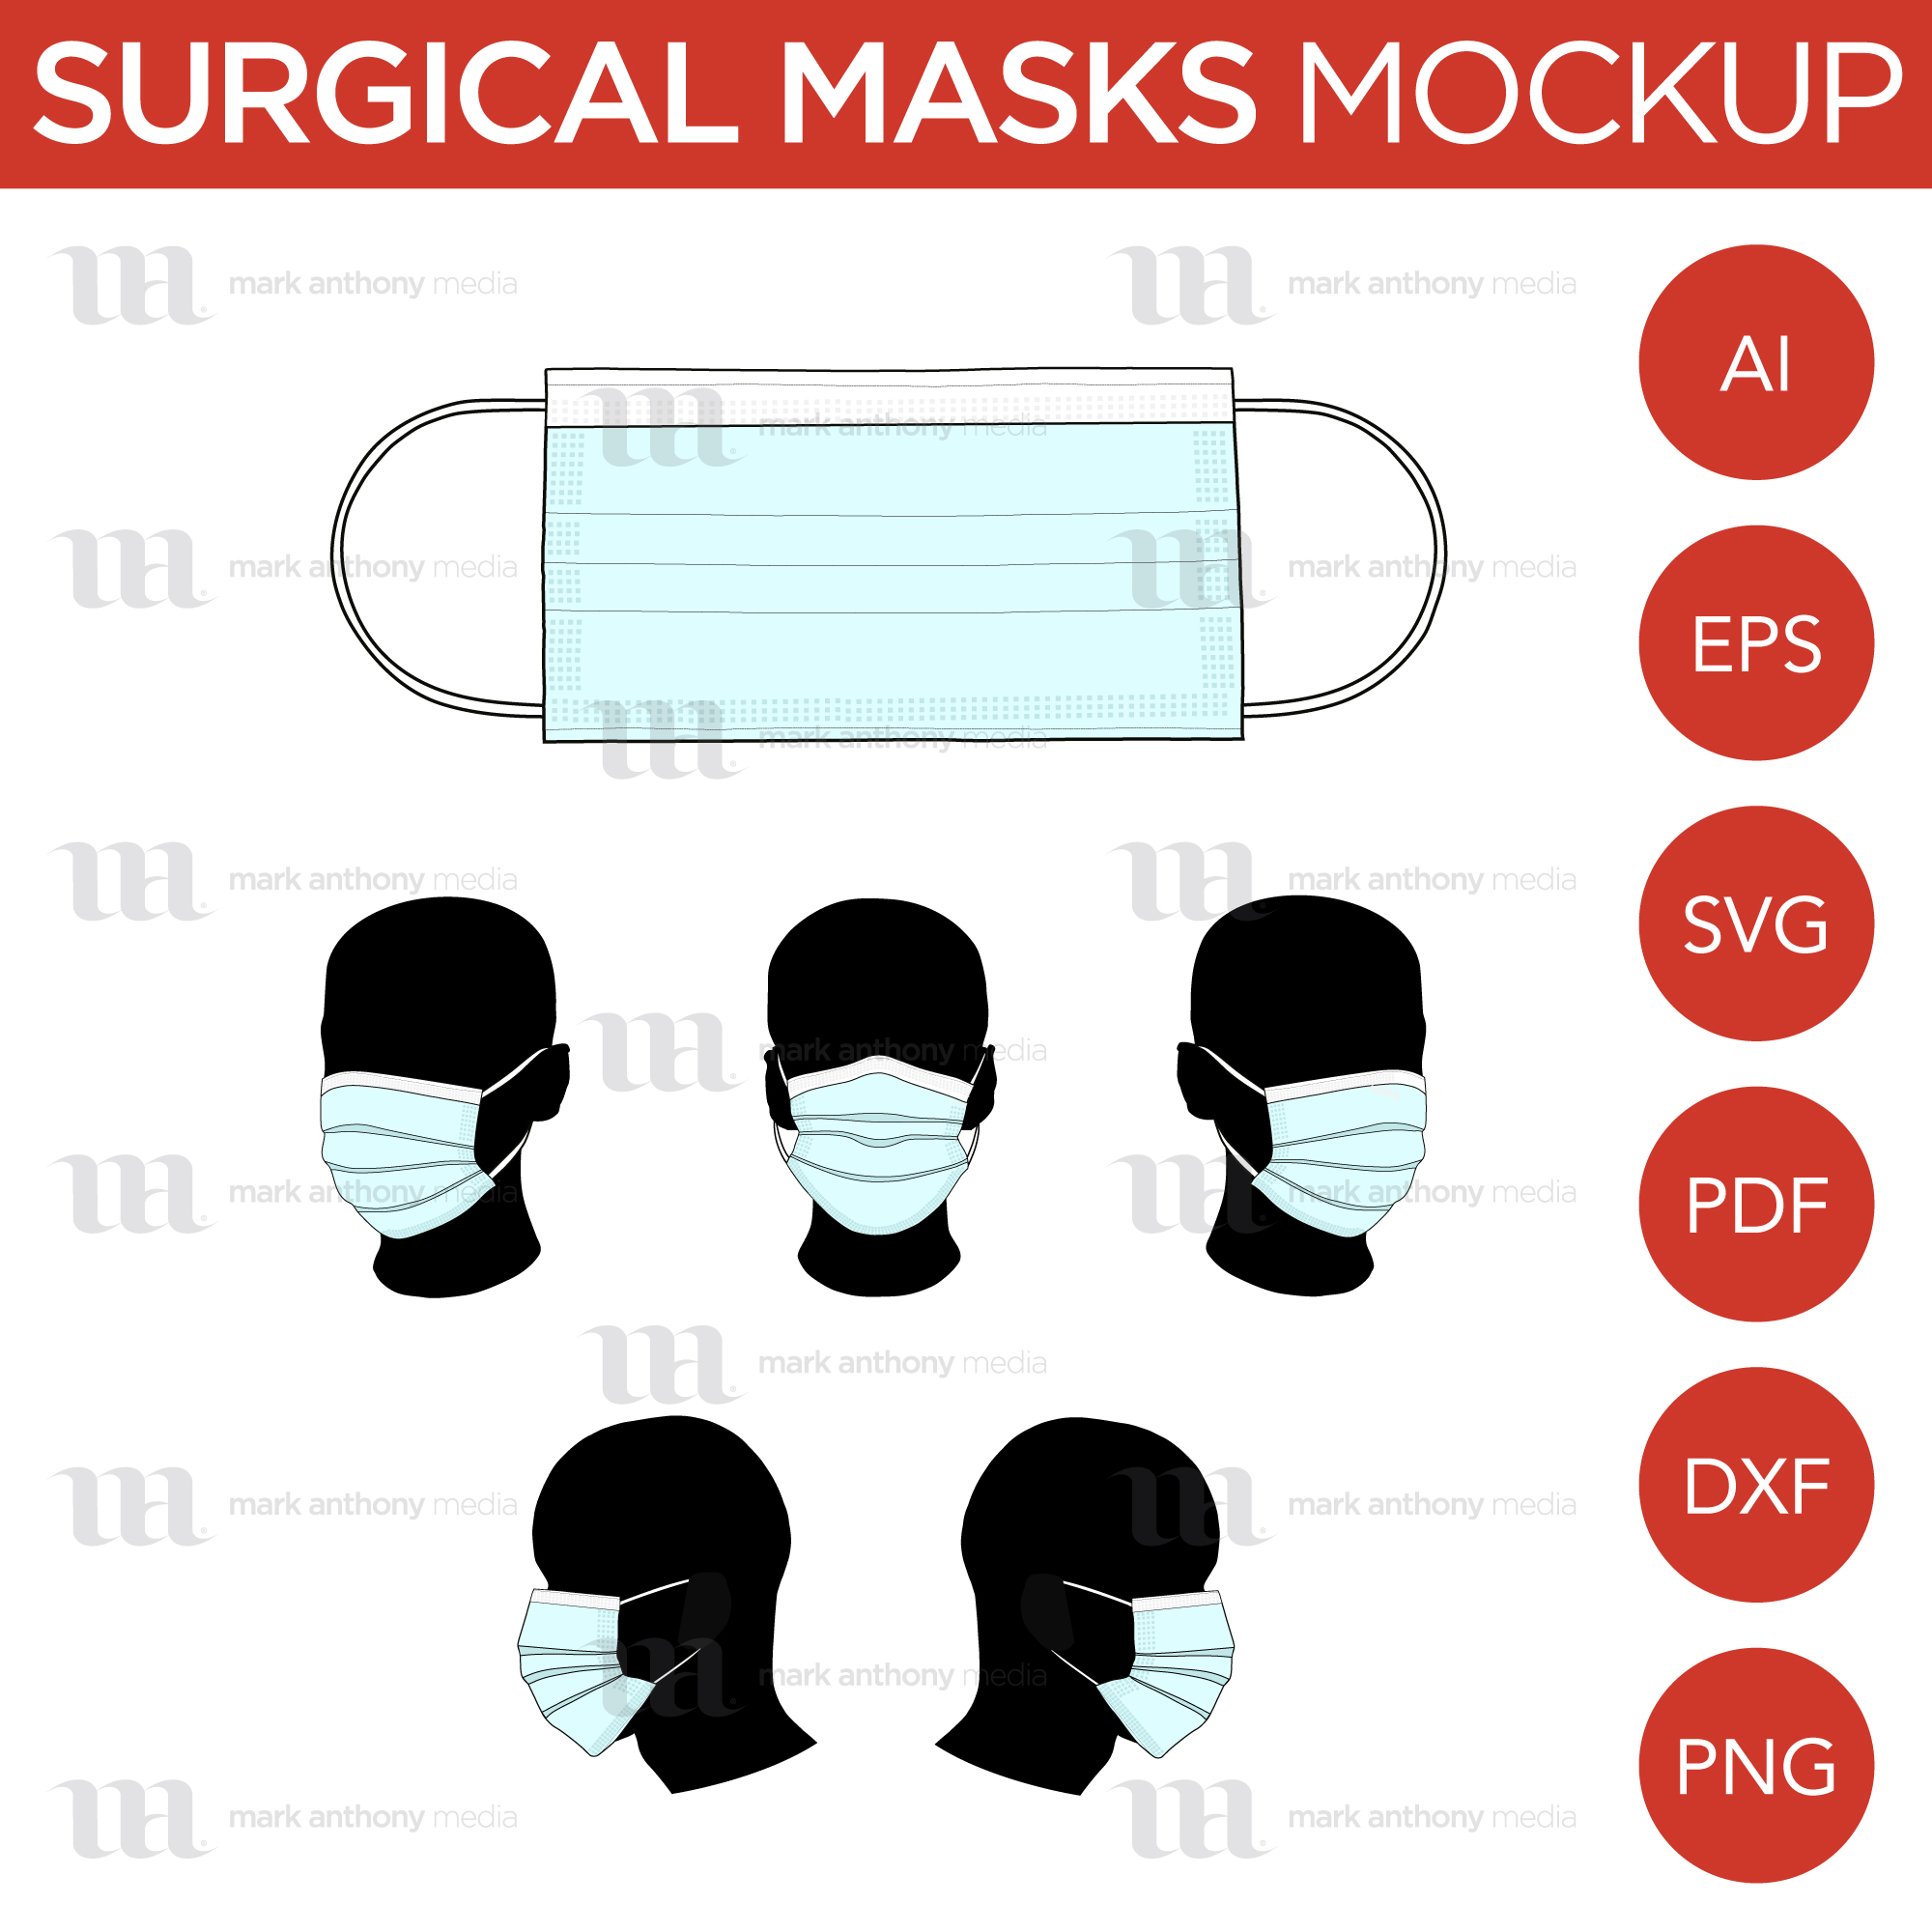 Surgical Masks - Mockup and Template - 6 Angles, 1 Style, Layered, Detailed and Editable Vector in EPS, SVG, AI, PNG, DXF and PDF